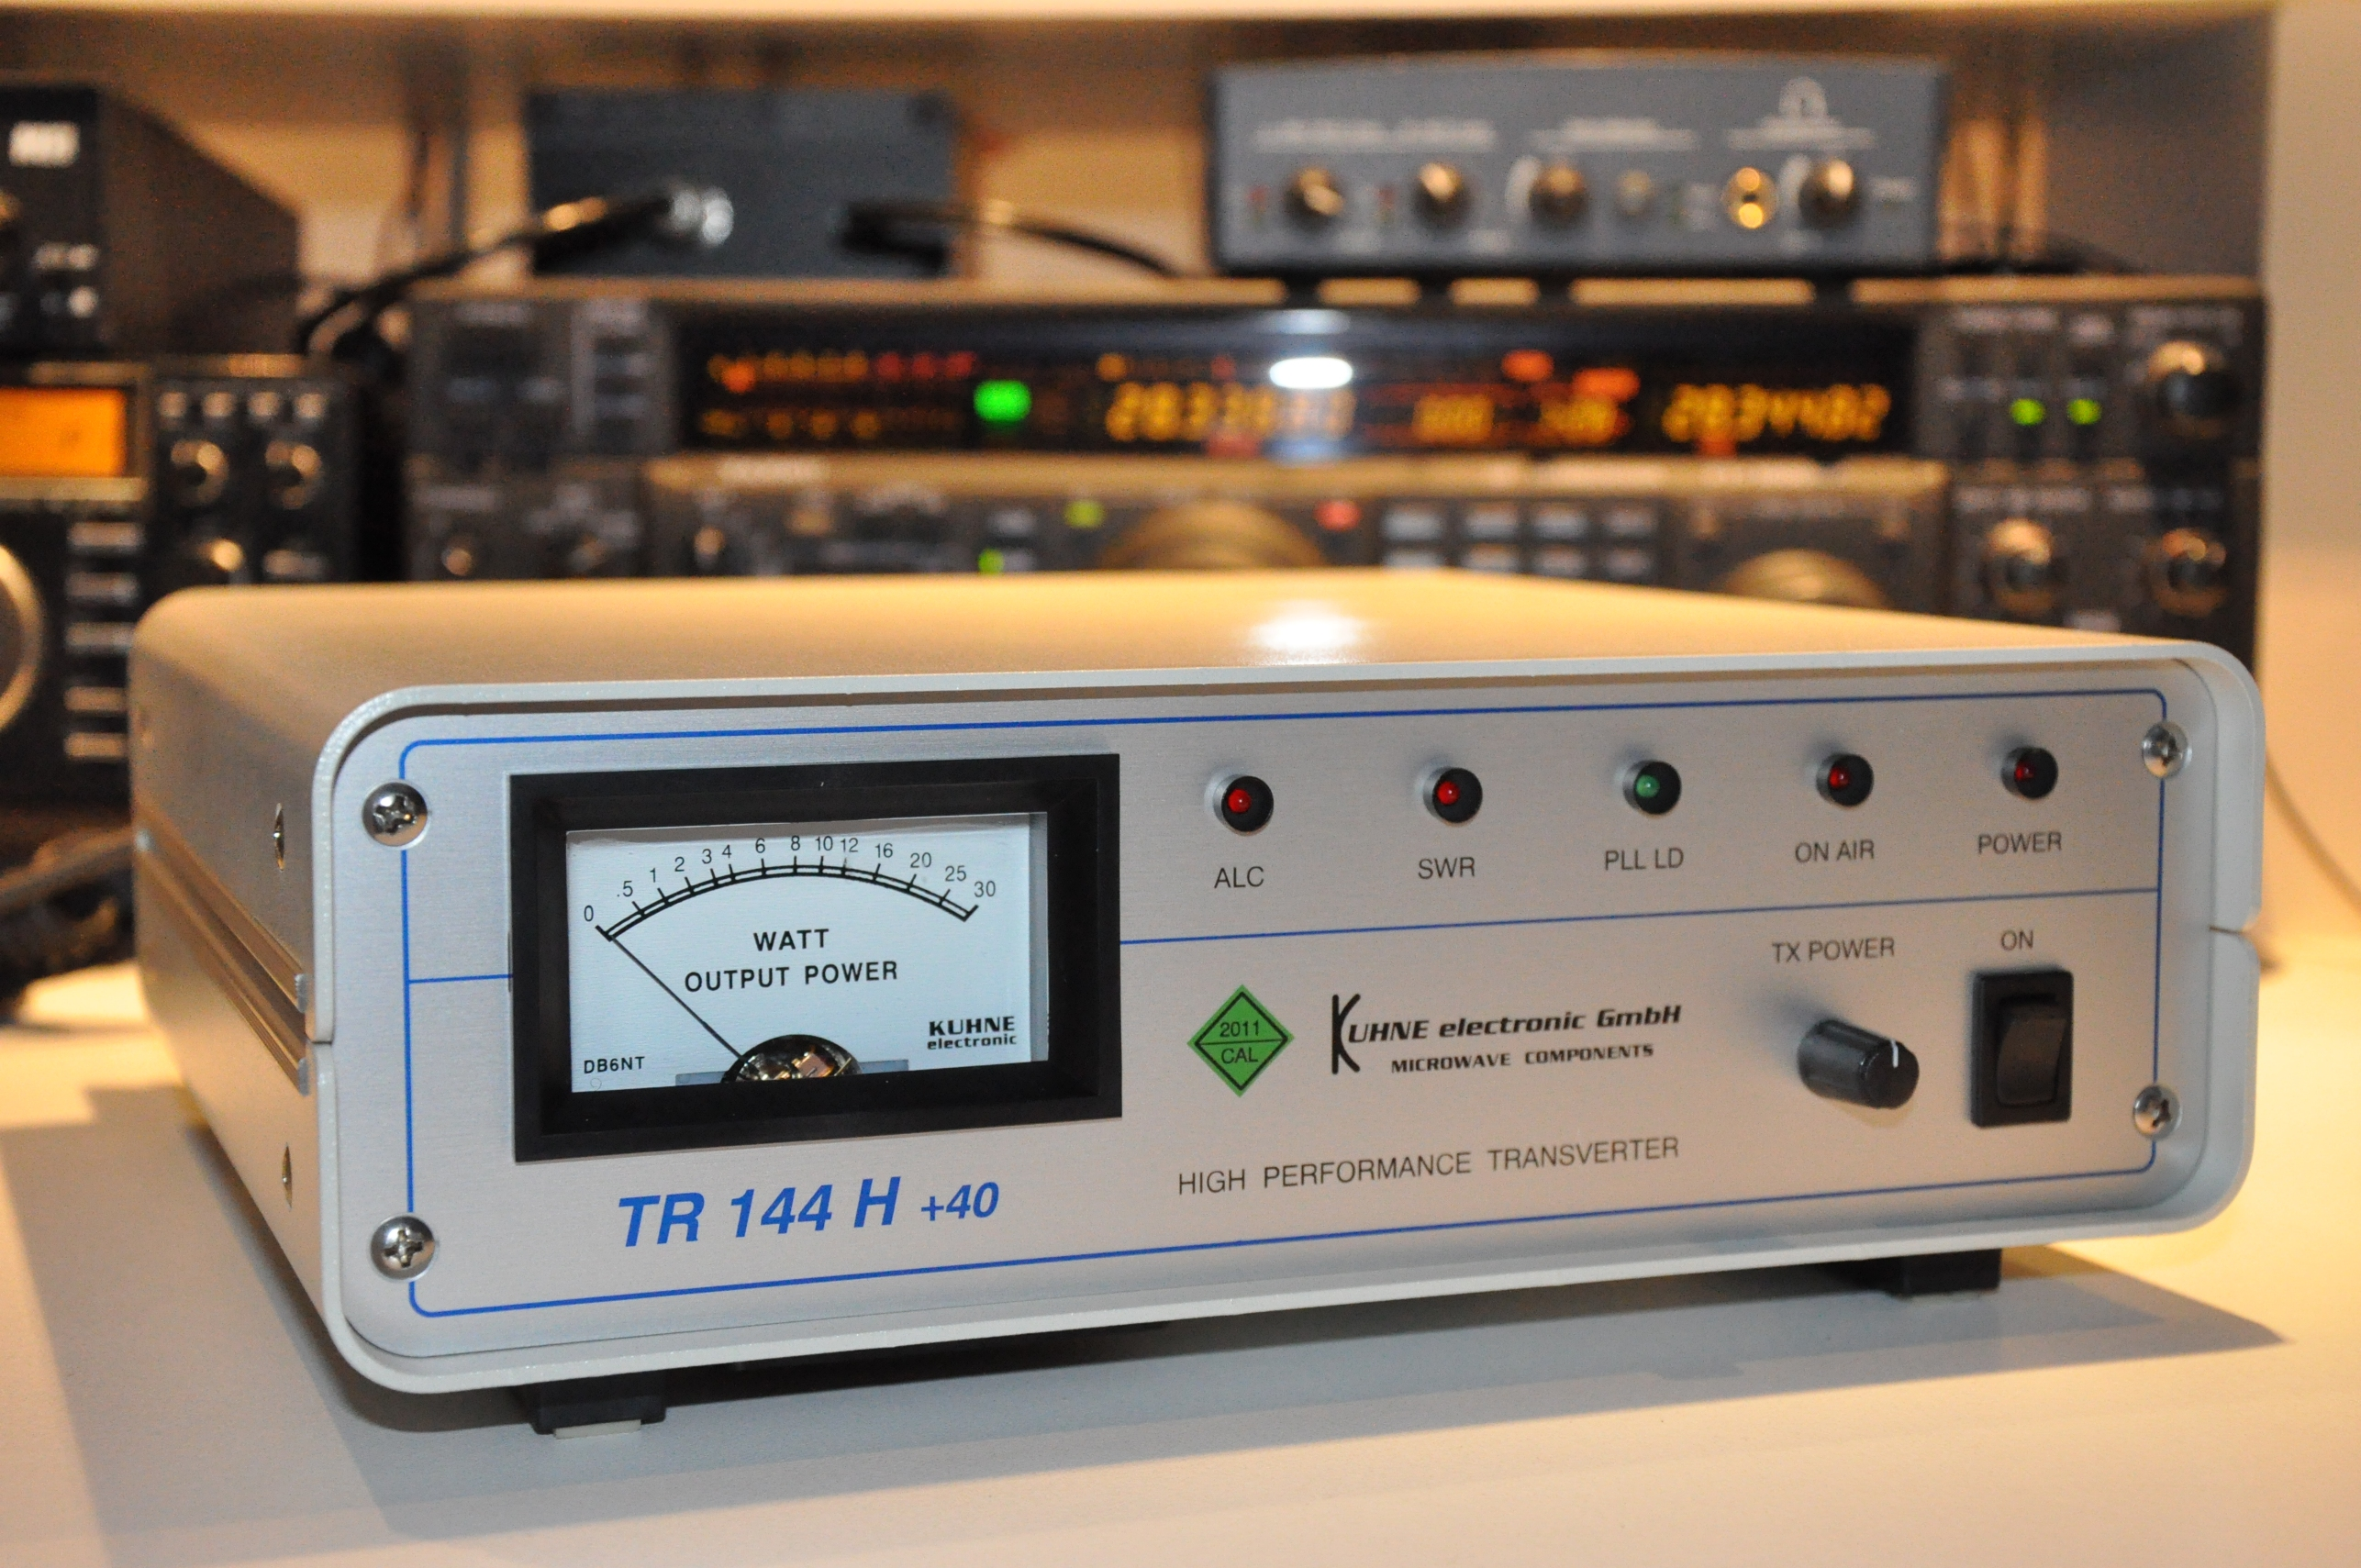 Apr 2013: new transverter TR144 H+40 by KUHNE electronic